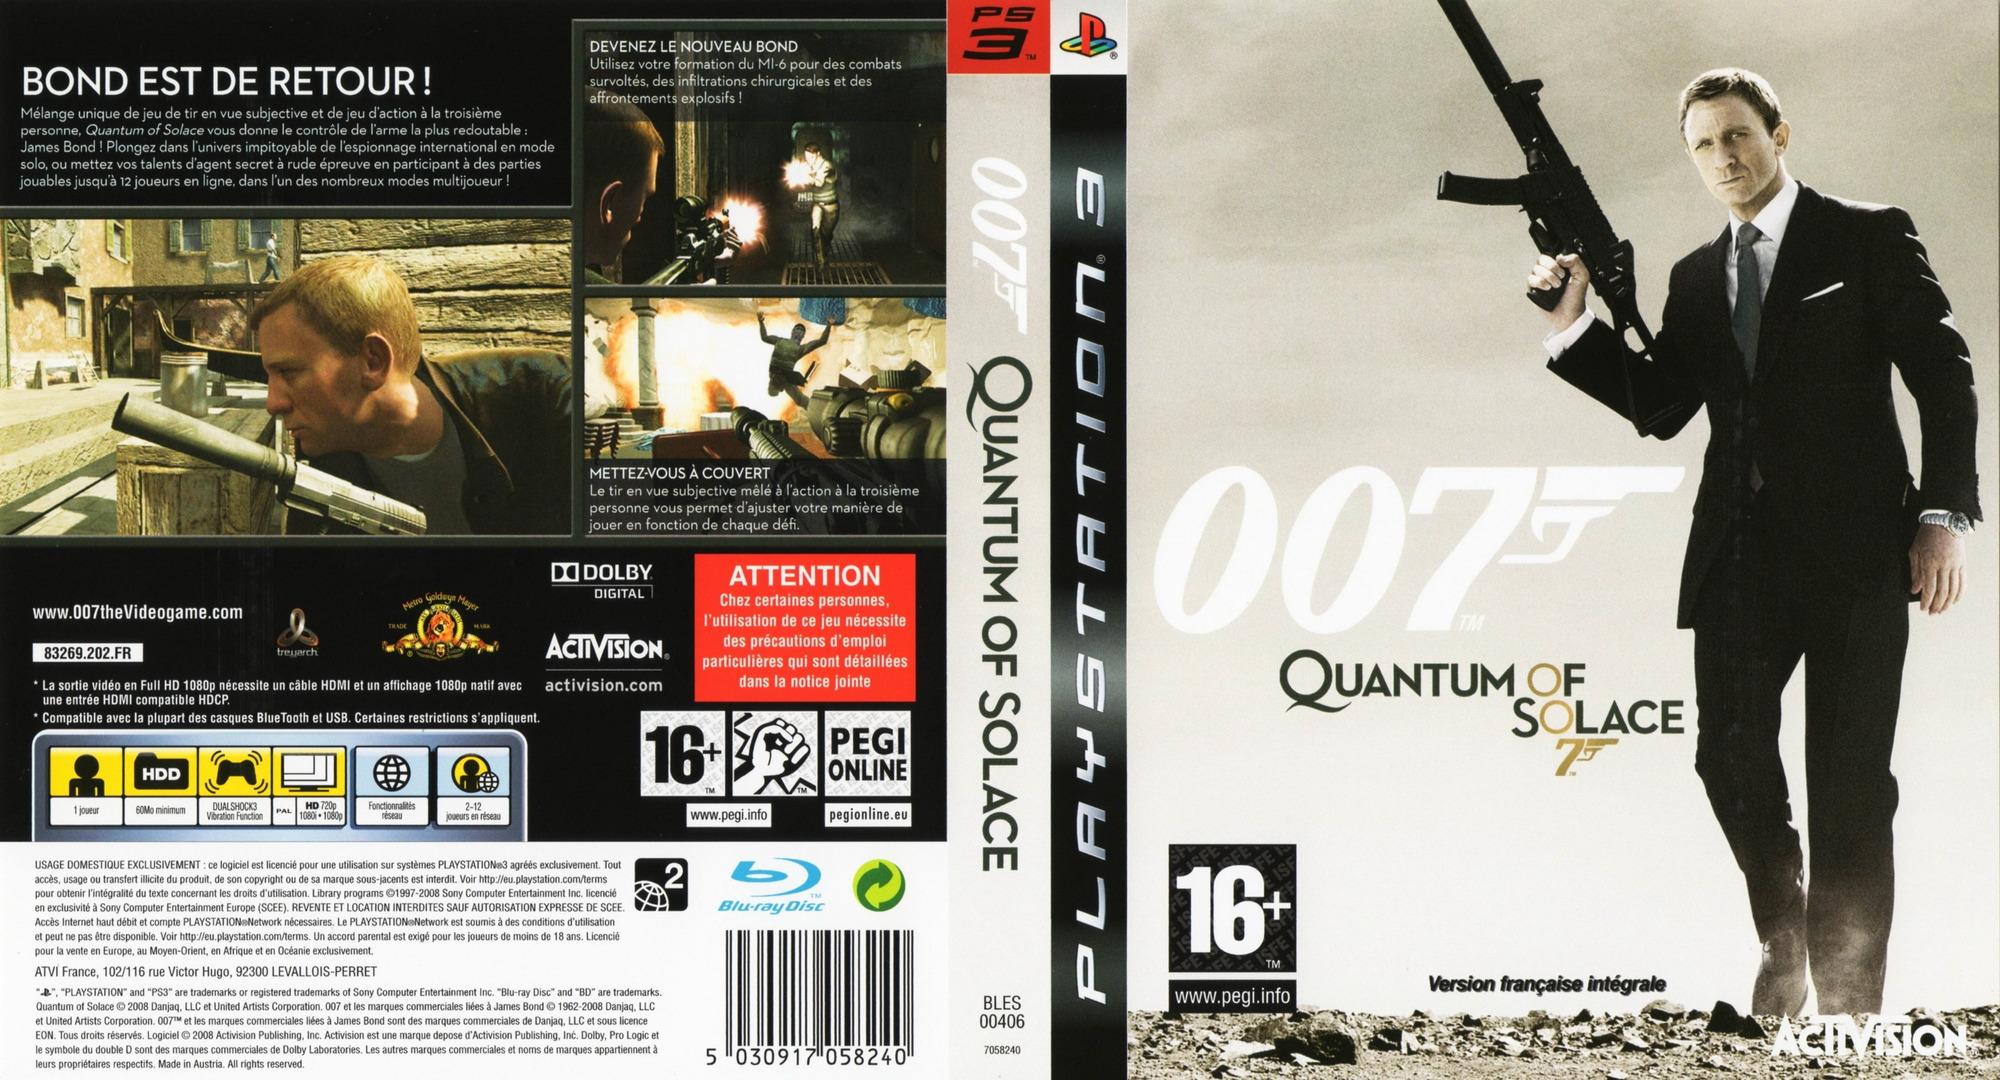 007 : Quantum of Solace PS3 coverfullHQ (BLES00406)